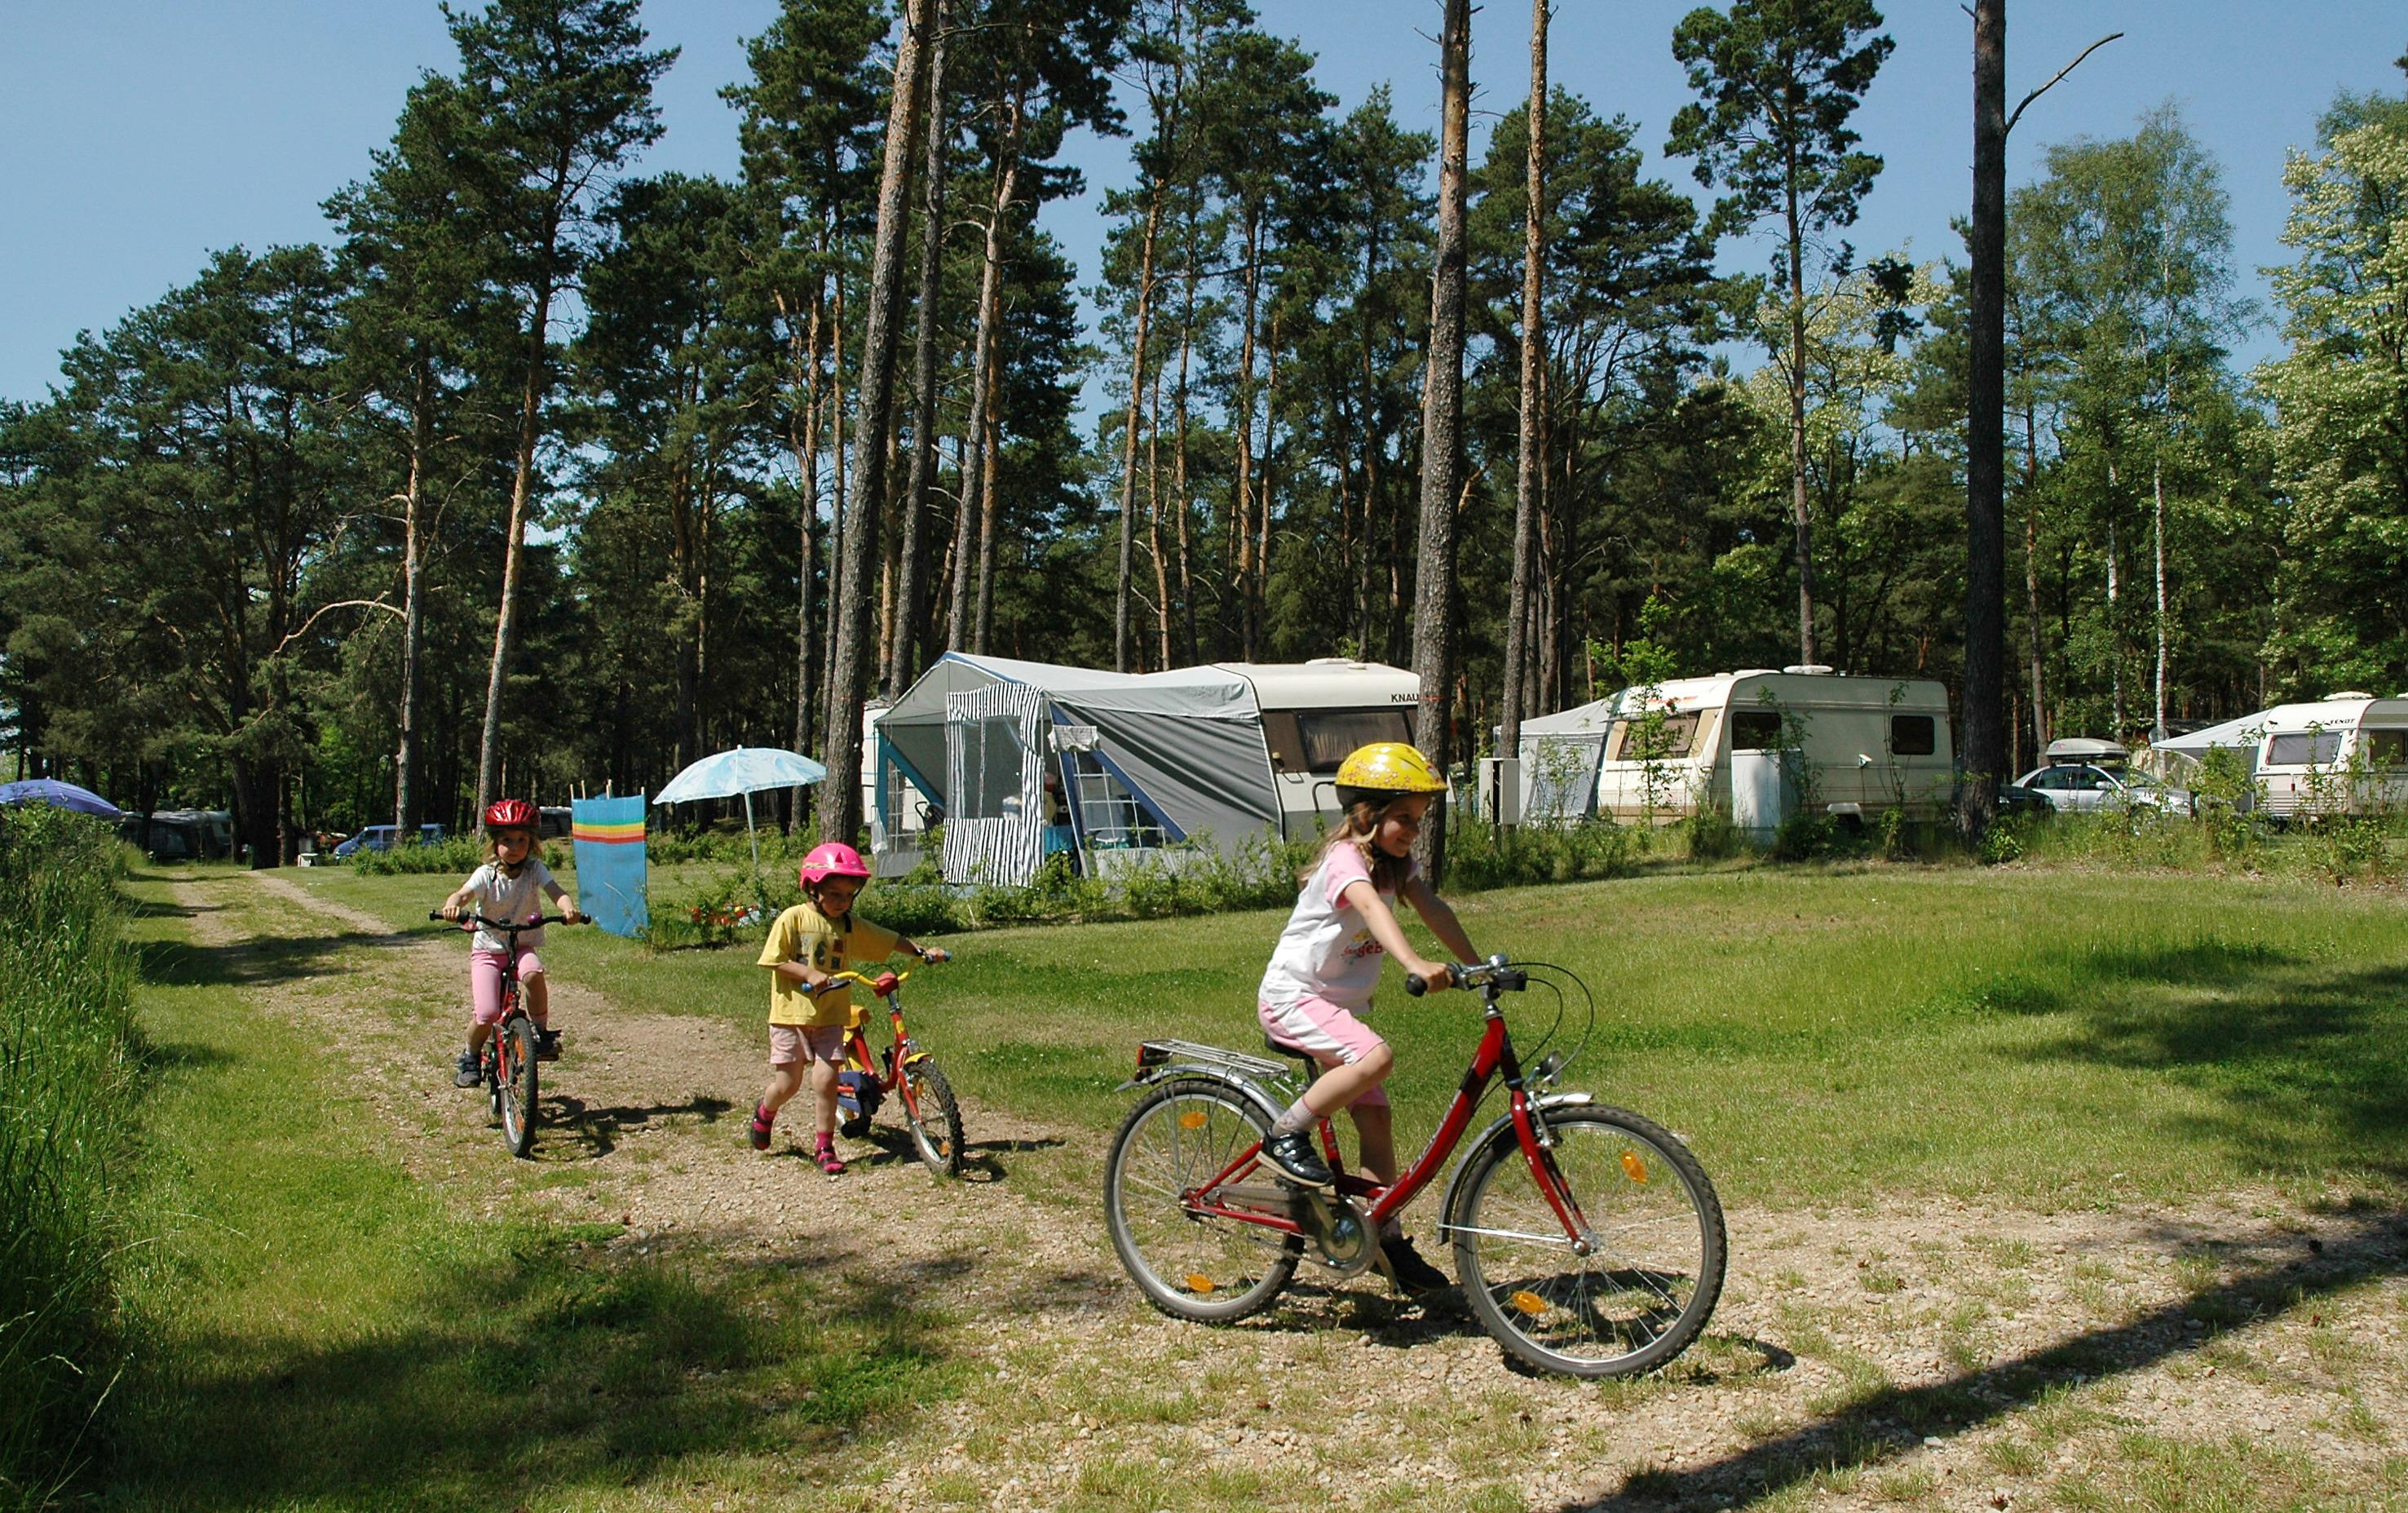 Emplacement - Empl. Camping-Car - 2 Adultes / 3 Enfants Ou 3 Adultes - Campingpark Am Weißen See